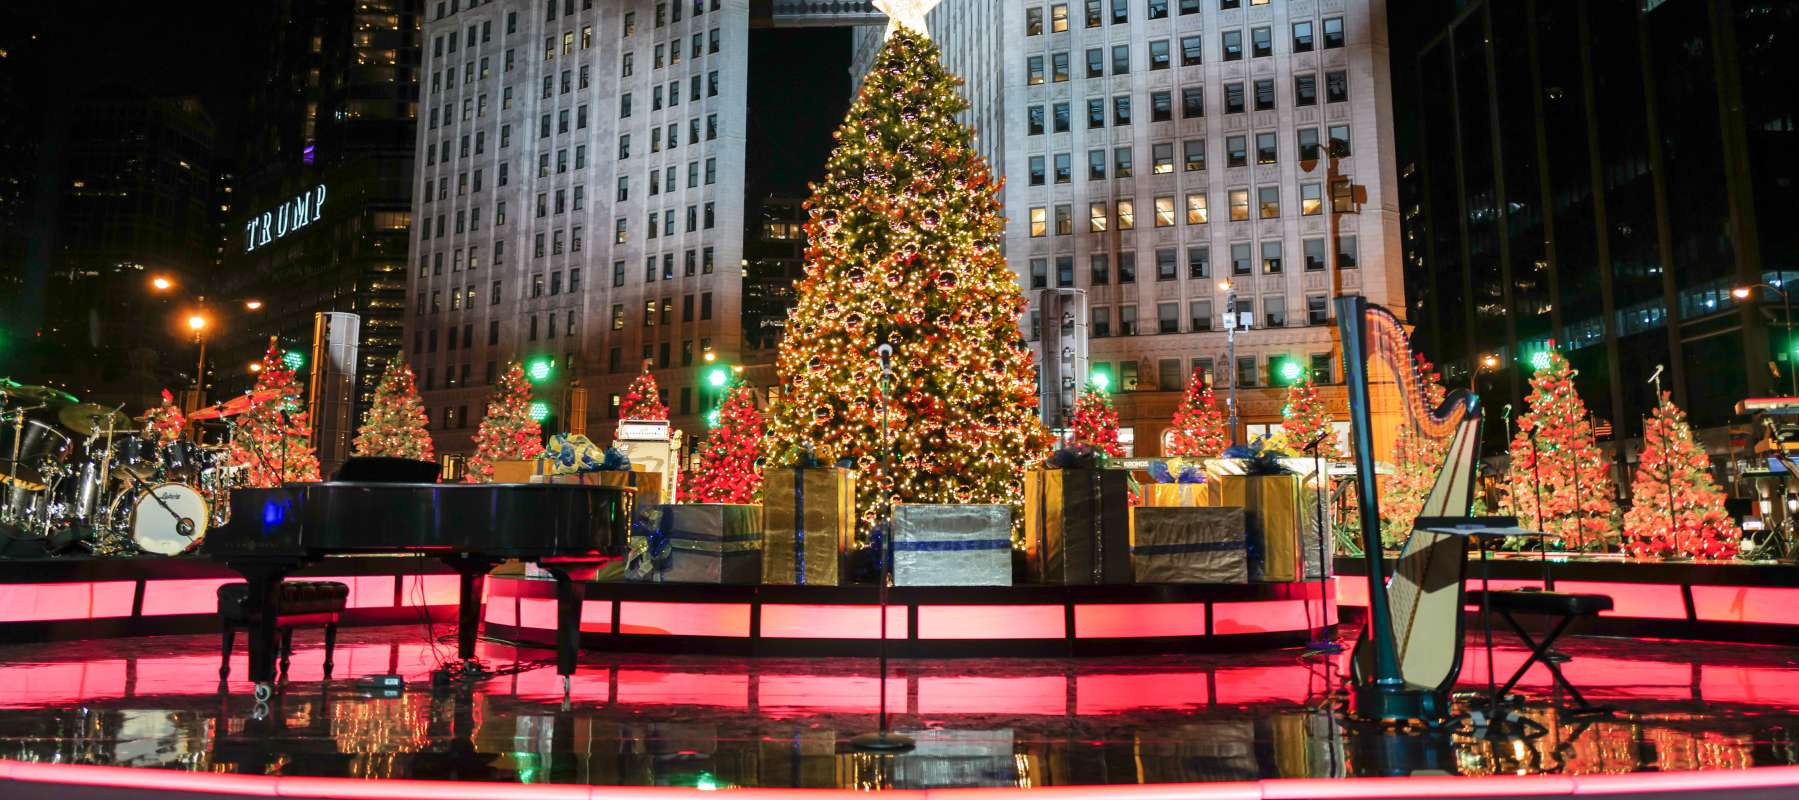 2021 Christmas Light Show In Cleveland Ohio 6 Miles Broadcast Schedule Lights Festival